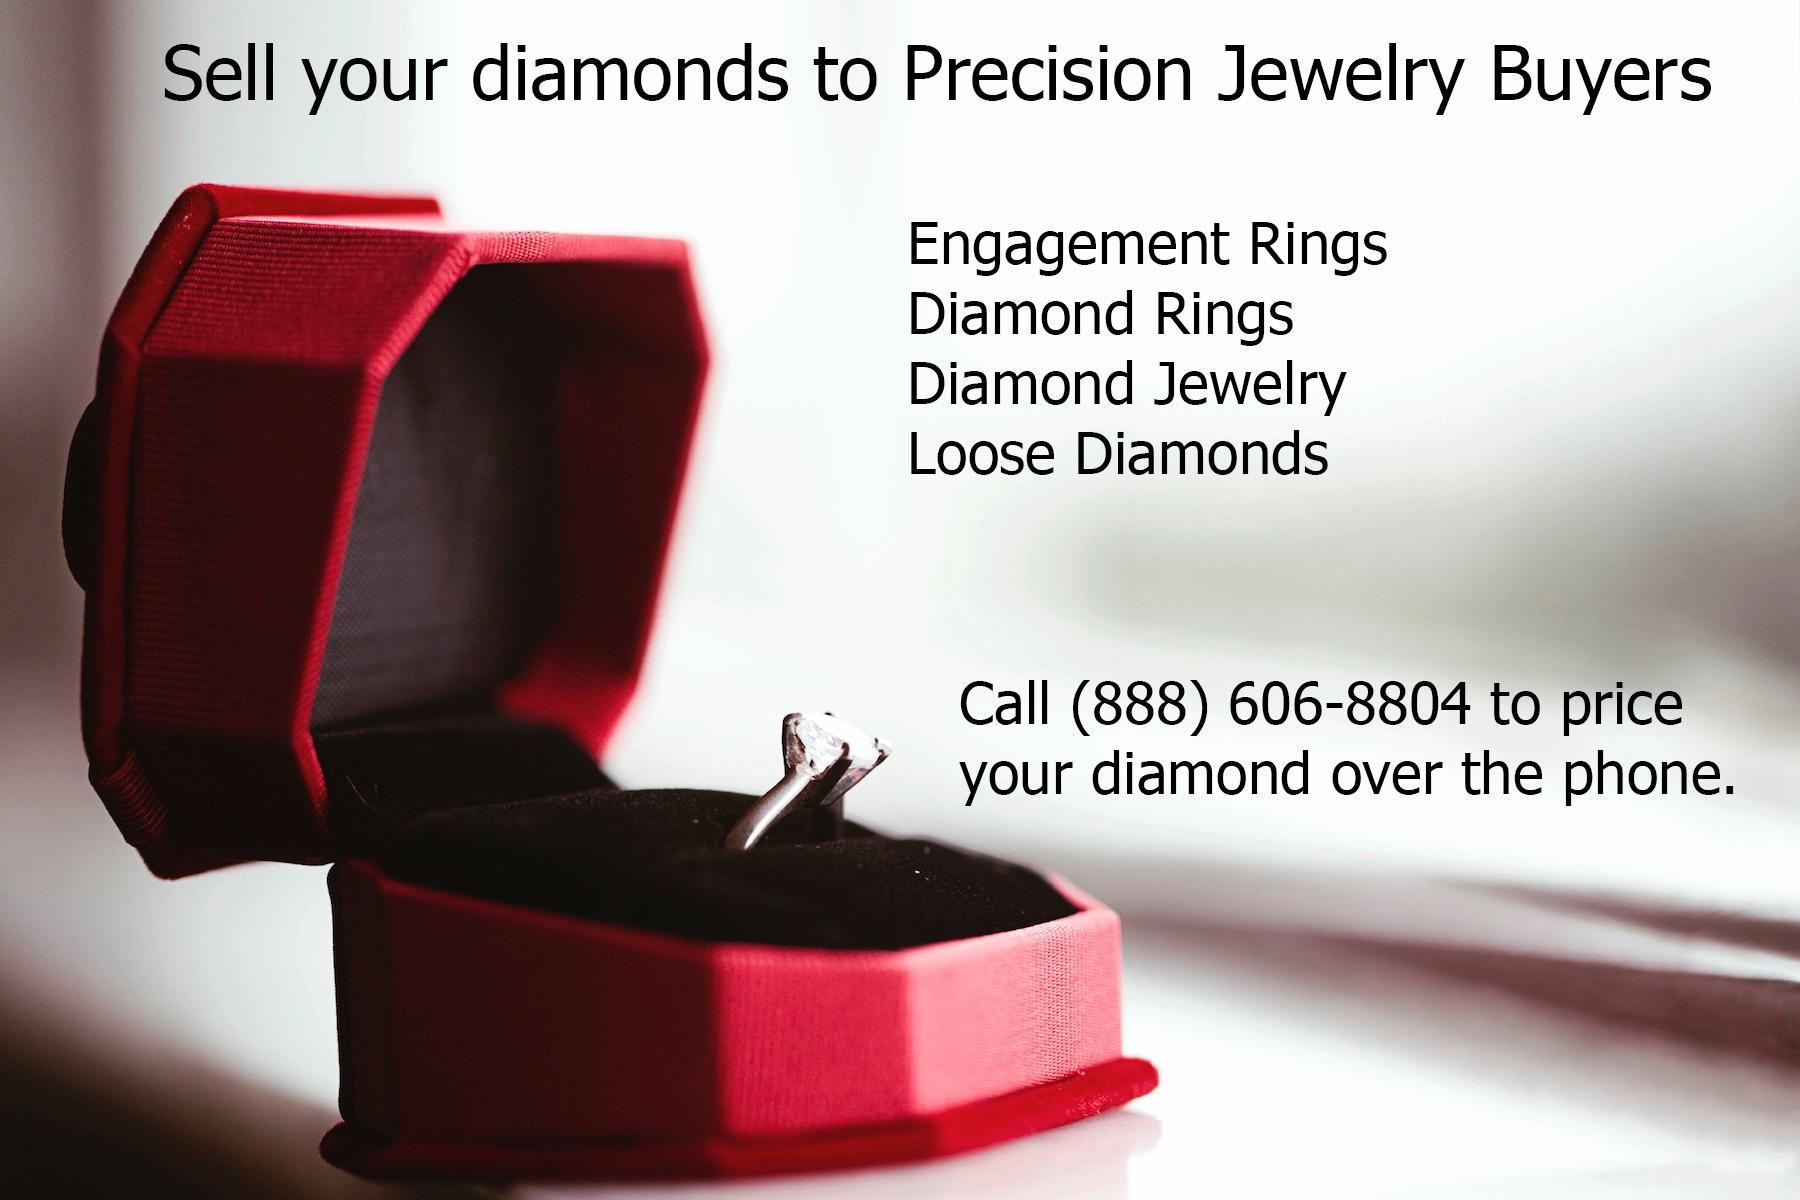 Precision Jewelry Buyers image 4